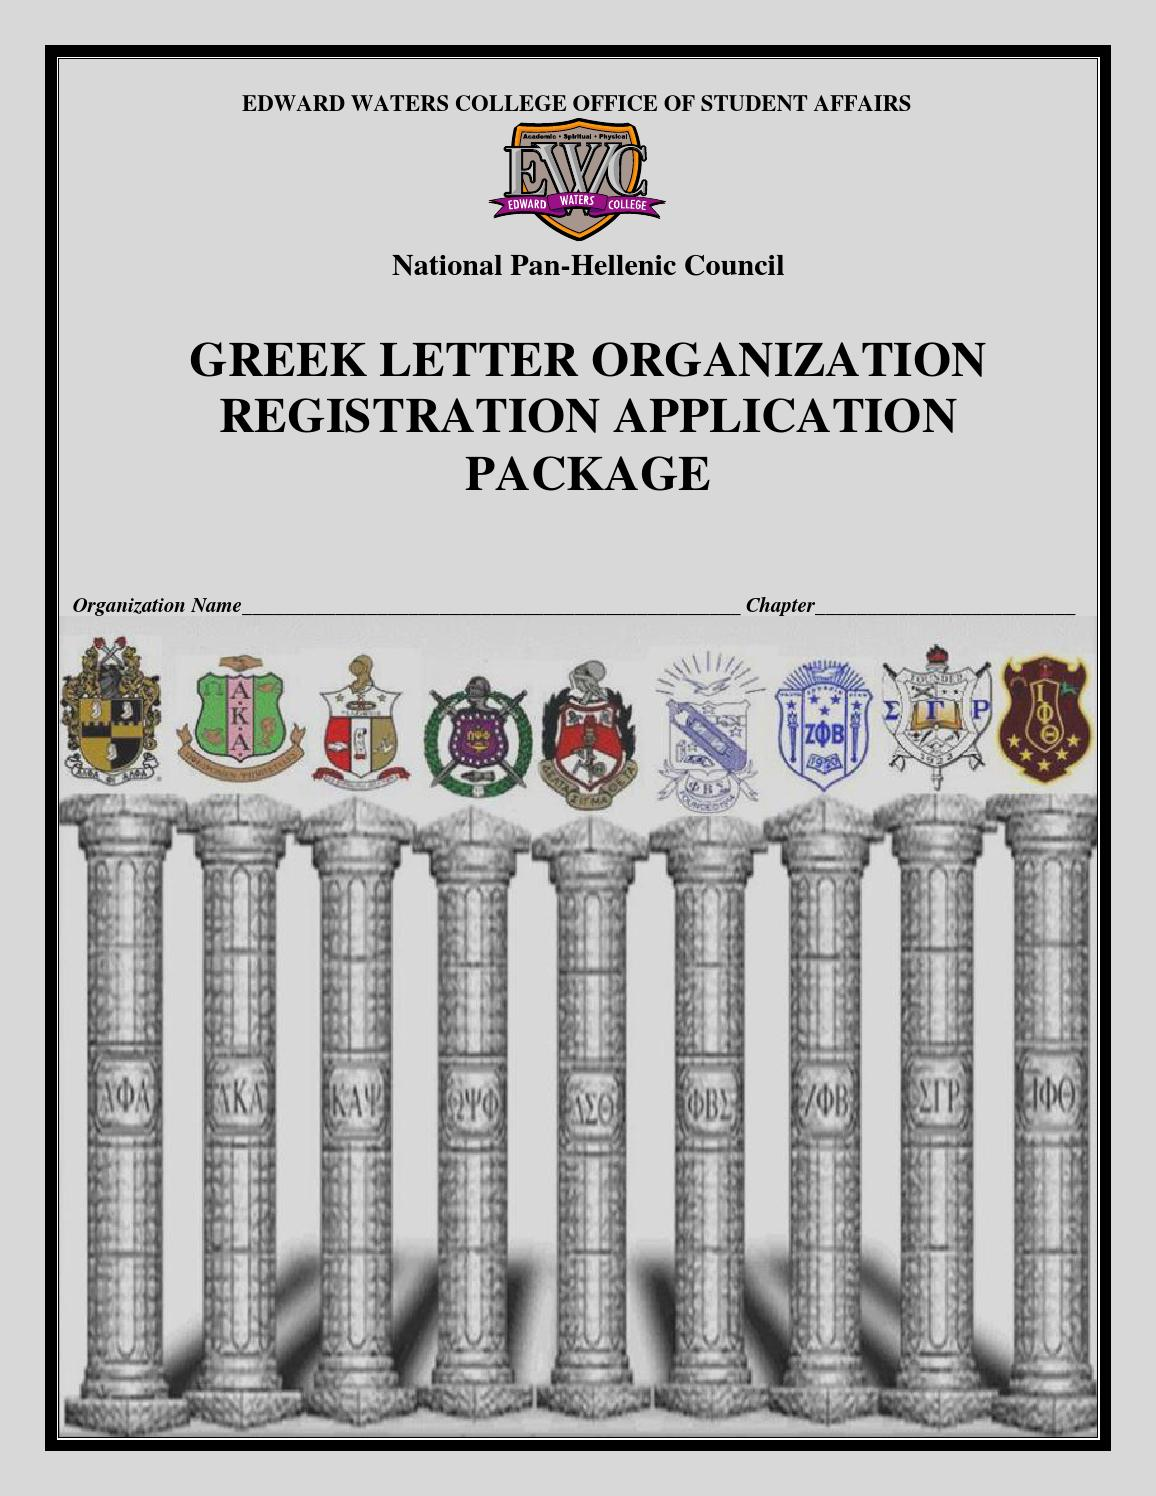 greek letter organizations ewc letter organization registration application 22038 | page 1